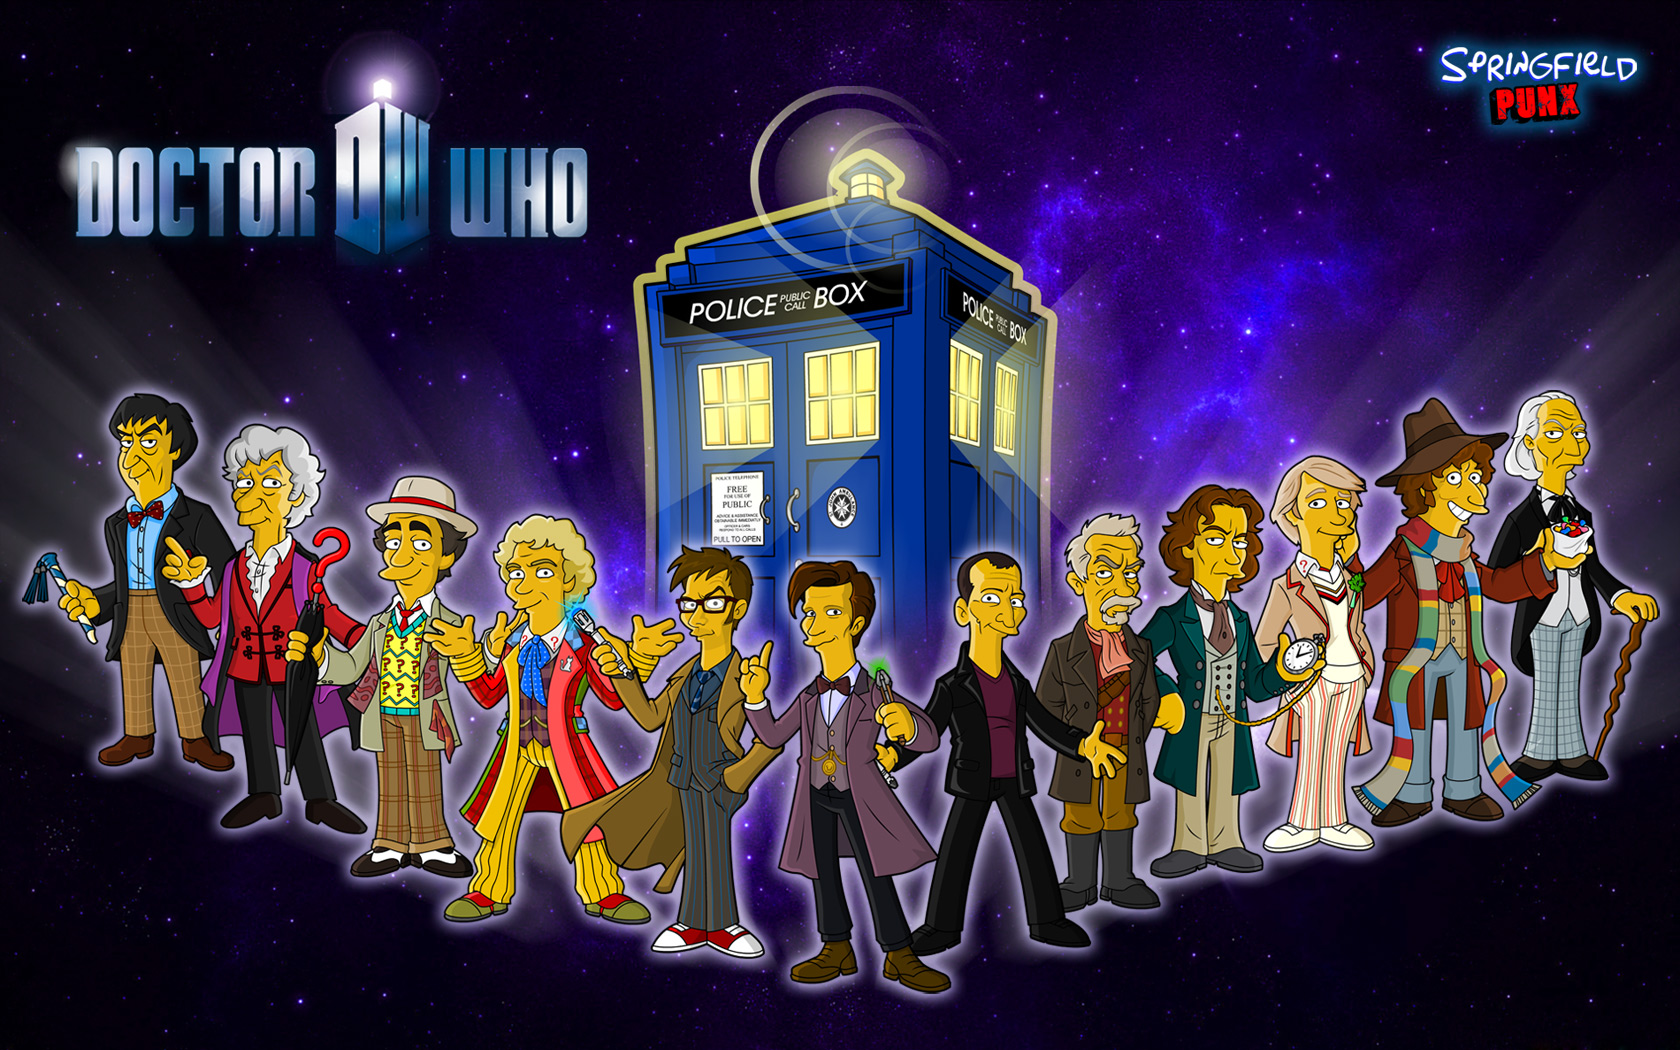 springfield punx new doctor who wallpaper new doctor who wallpaper 1680x1050